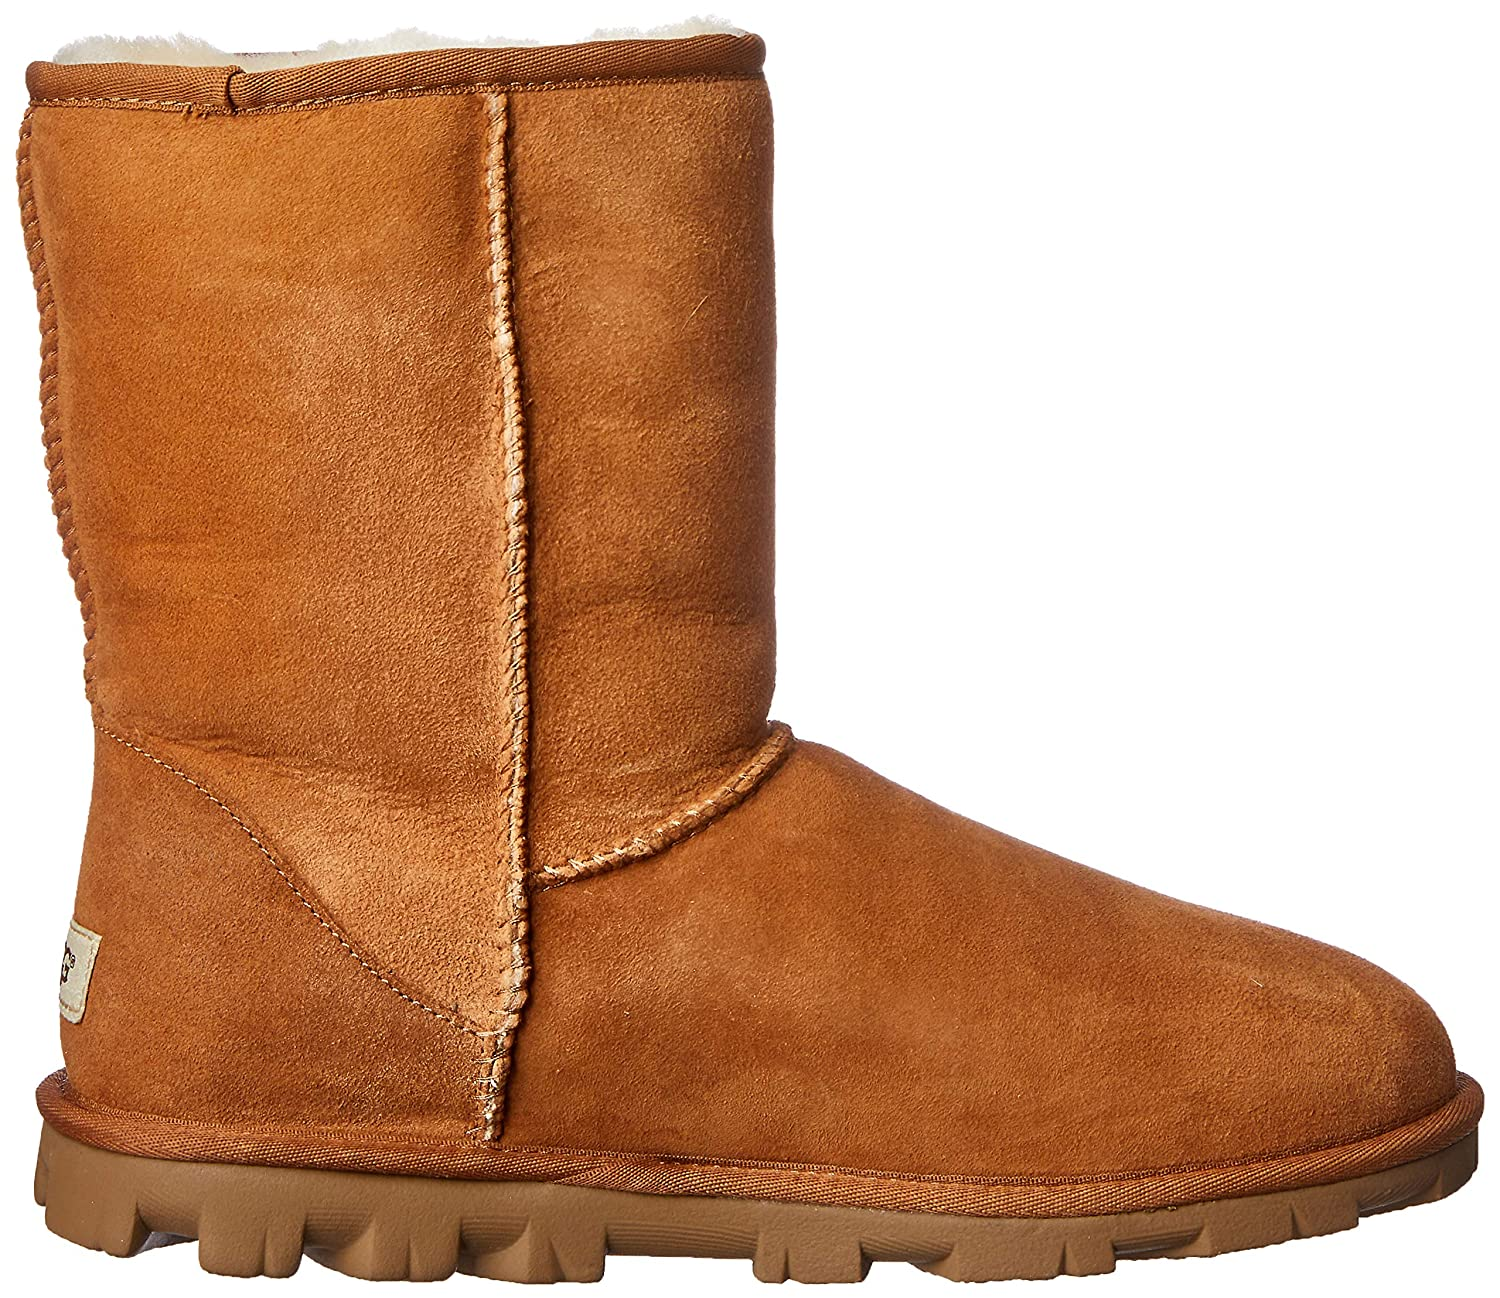 488d37875c6 UGG Women's Essential Short